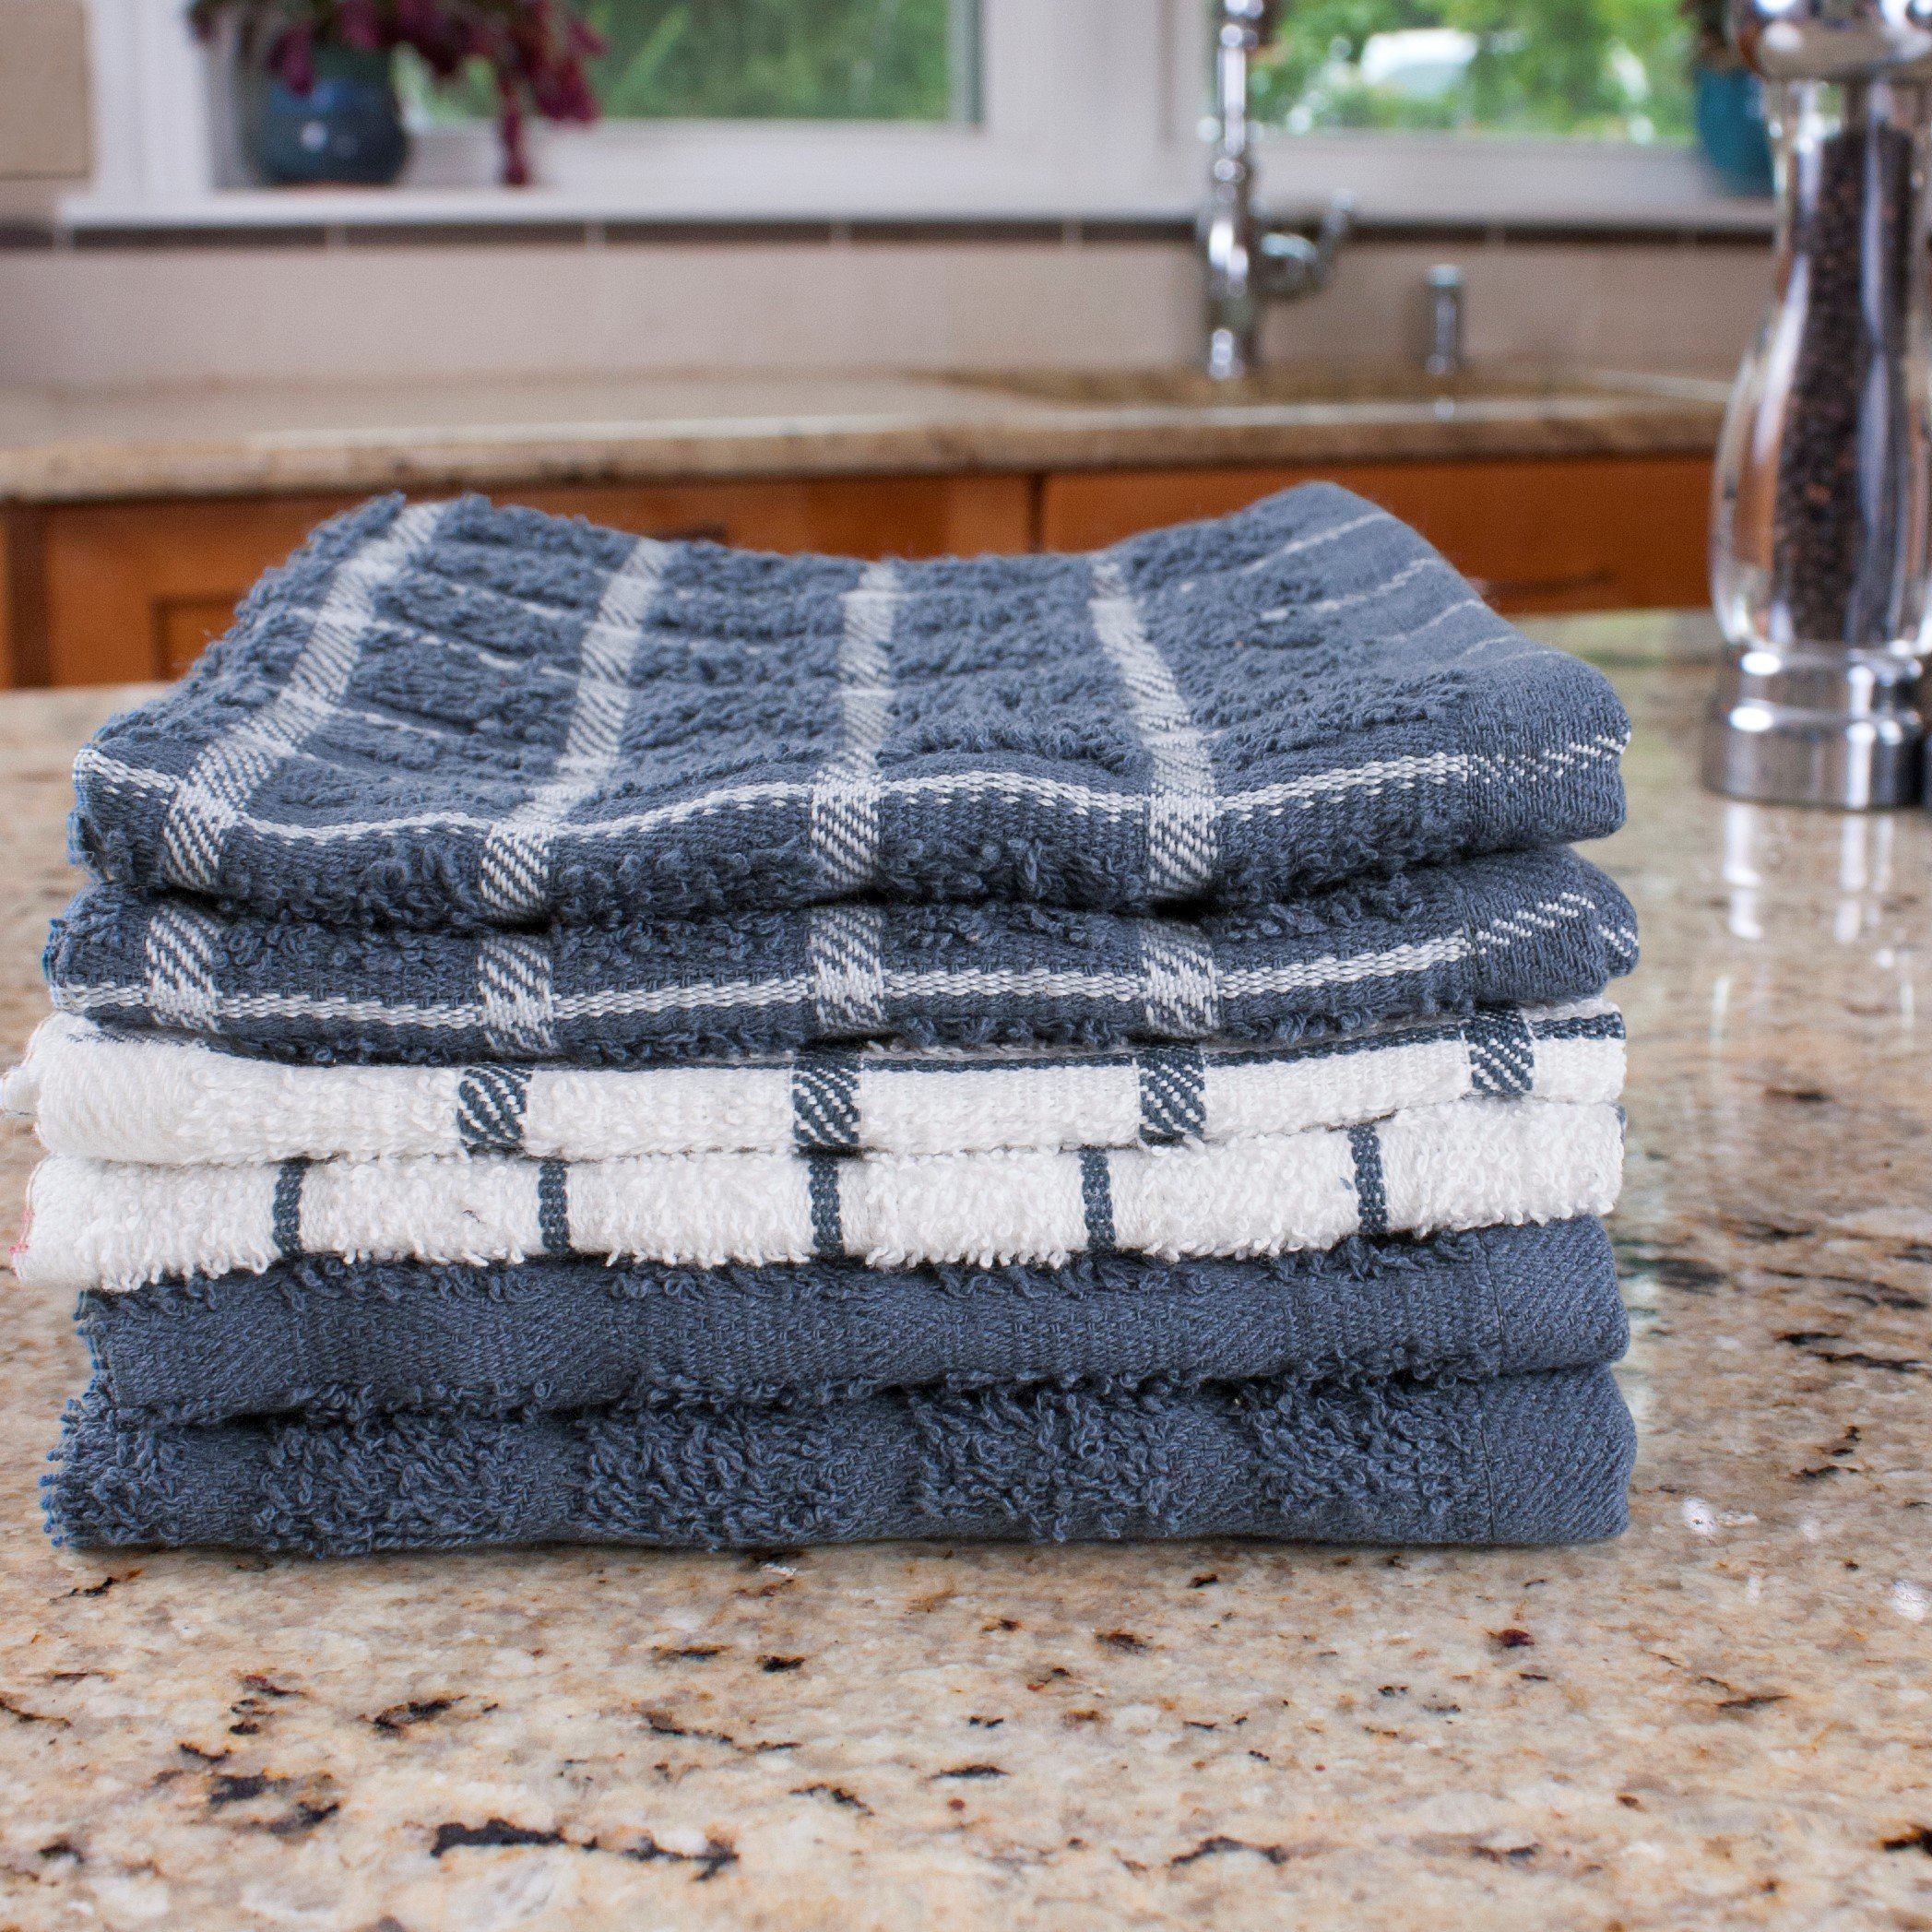 "Ritz 100% Terry Cotton, Highly Absorbent Dish Cloth Set, 12"" x 12"", 6-Pack, Federal Blue by Ritz (Image #10)"